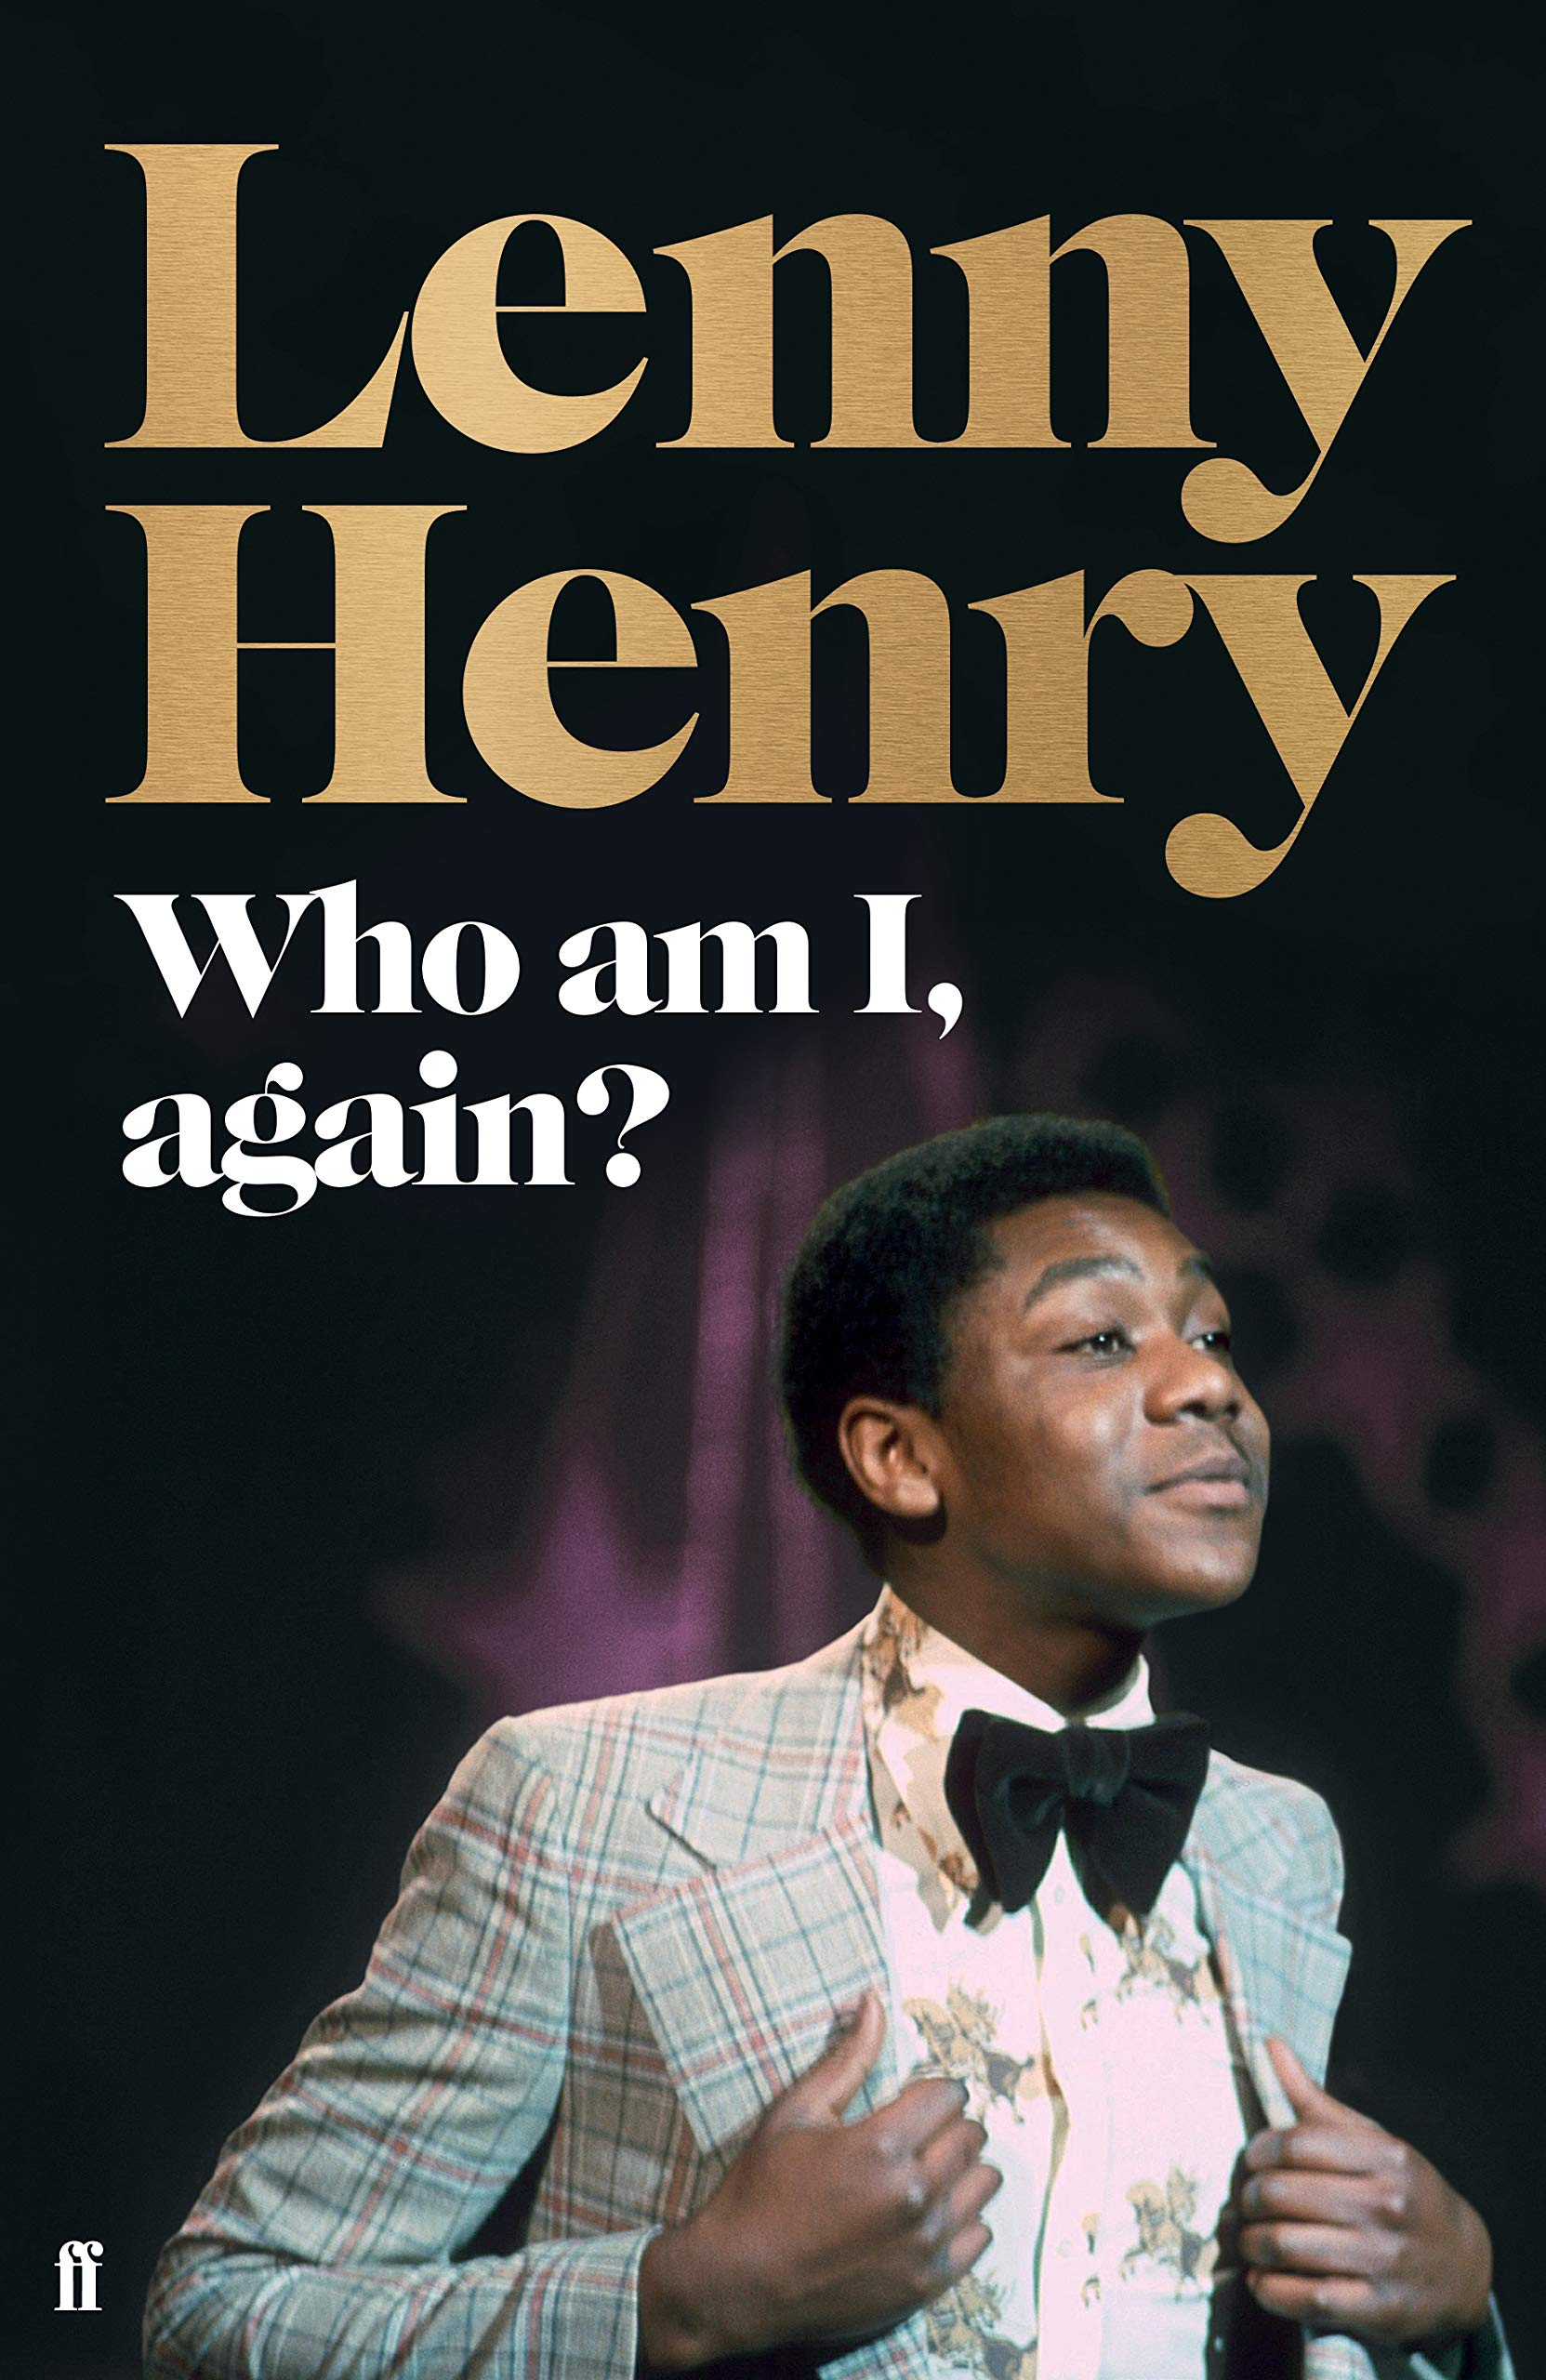 Buy Who am I, again? (SIGNED BY LENNY HENRY)